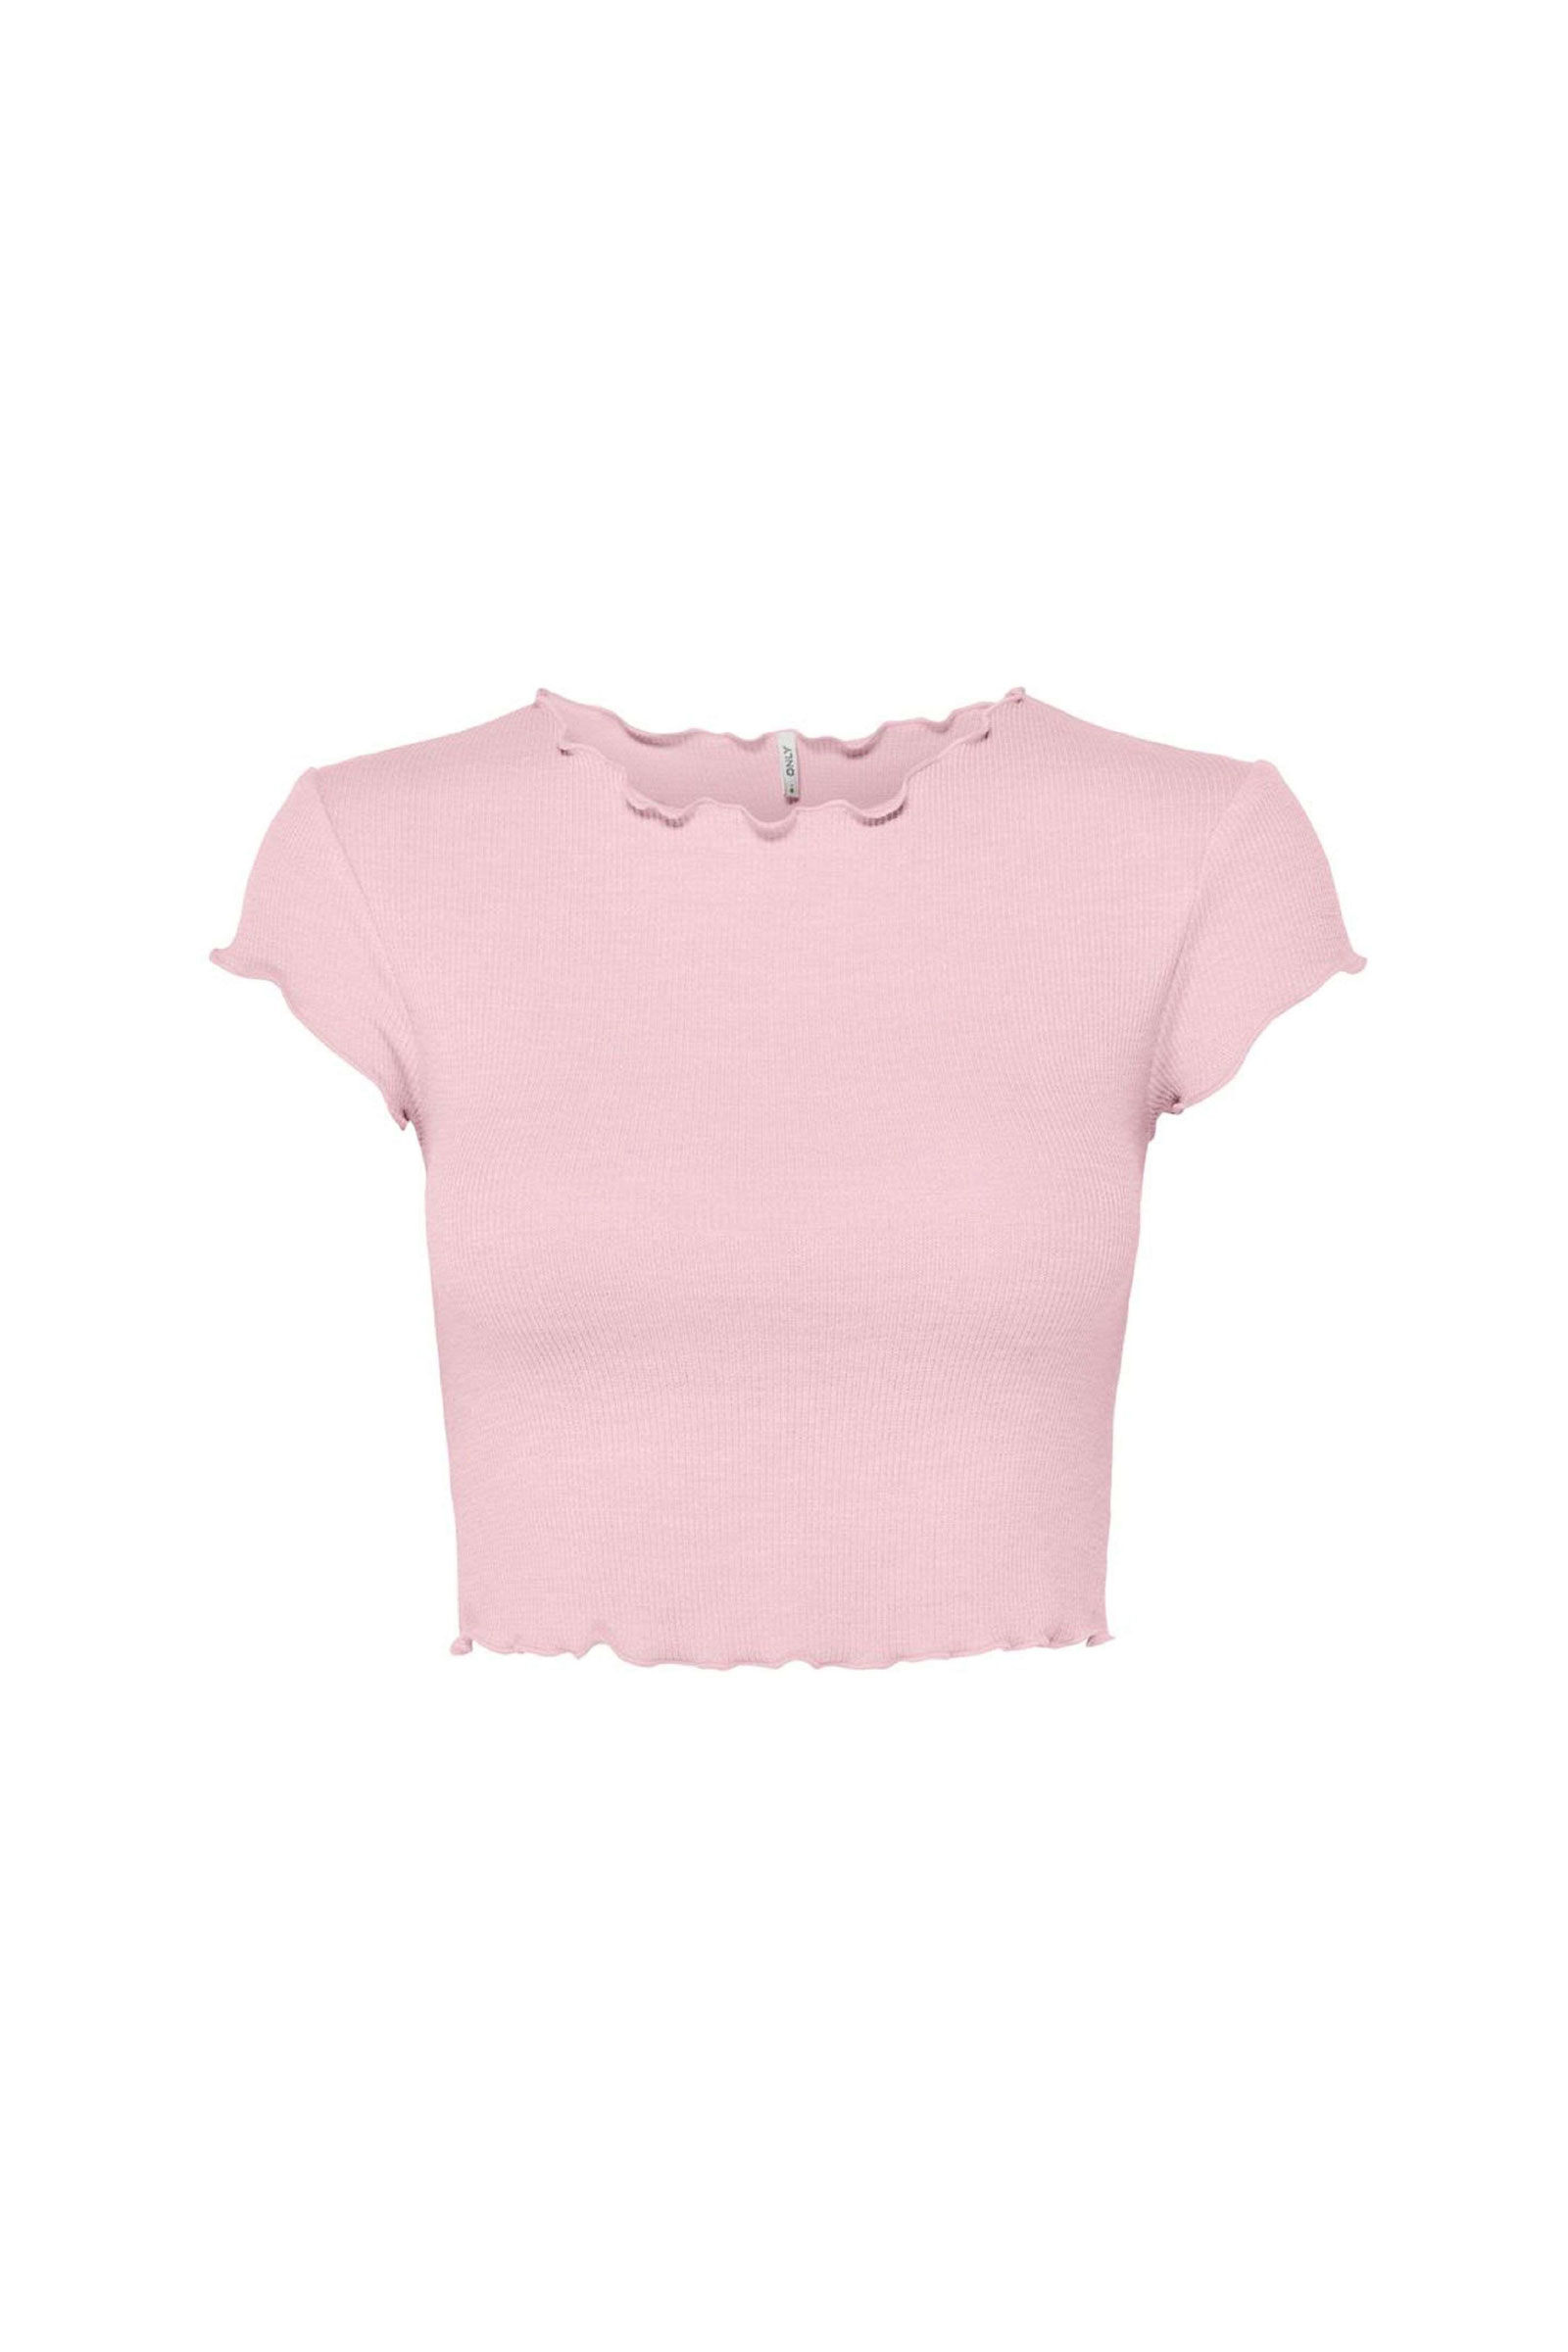 ONLY Top Donna Orchid Pink ONLY | Top | 15202041Orchid Pink